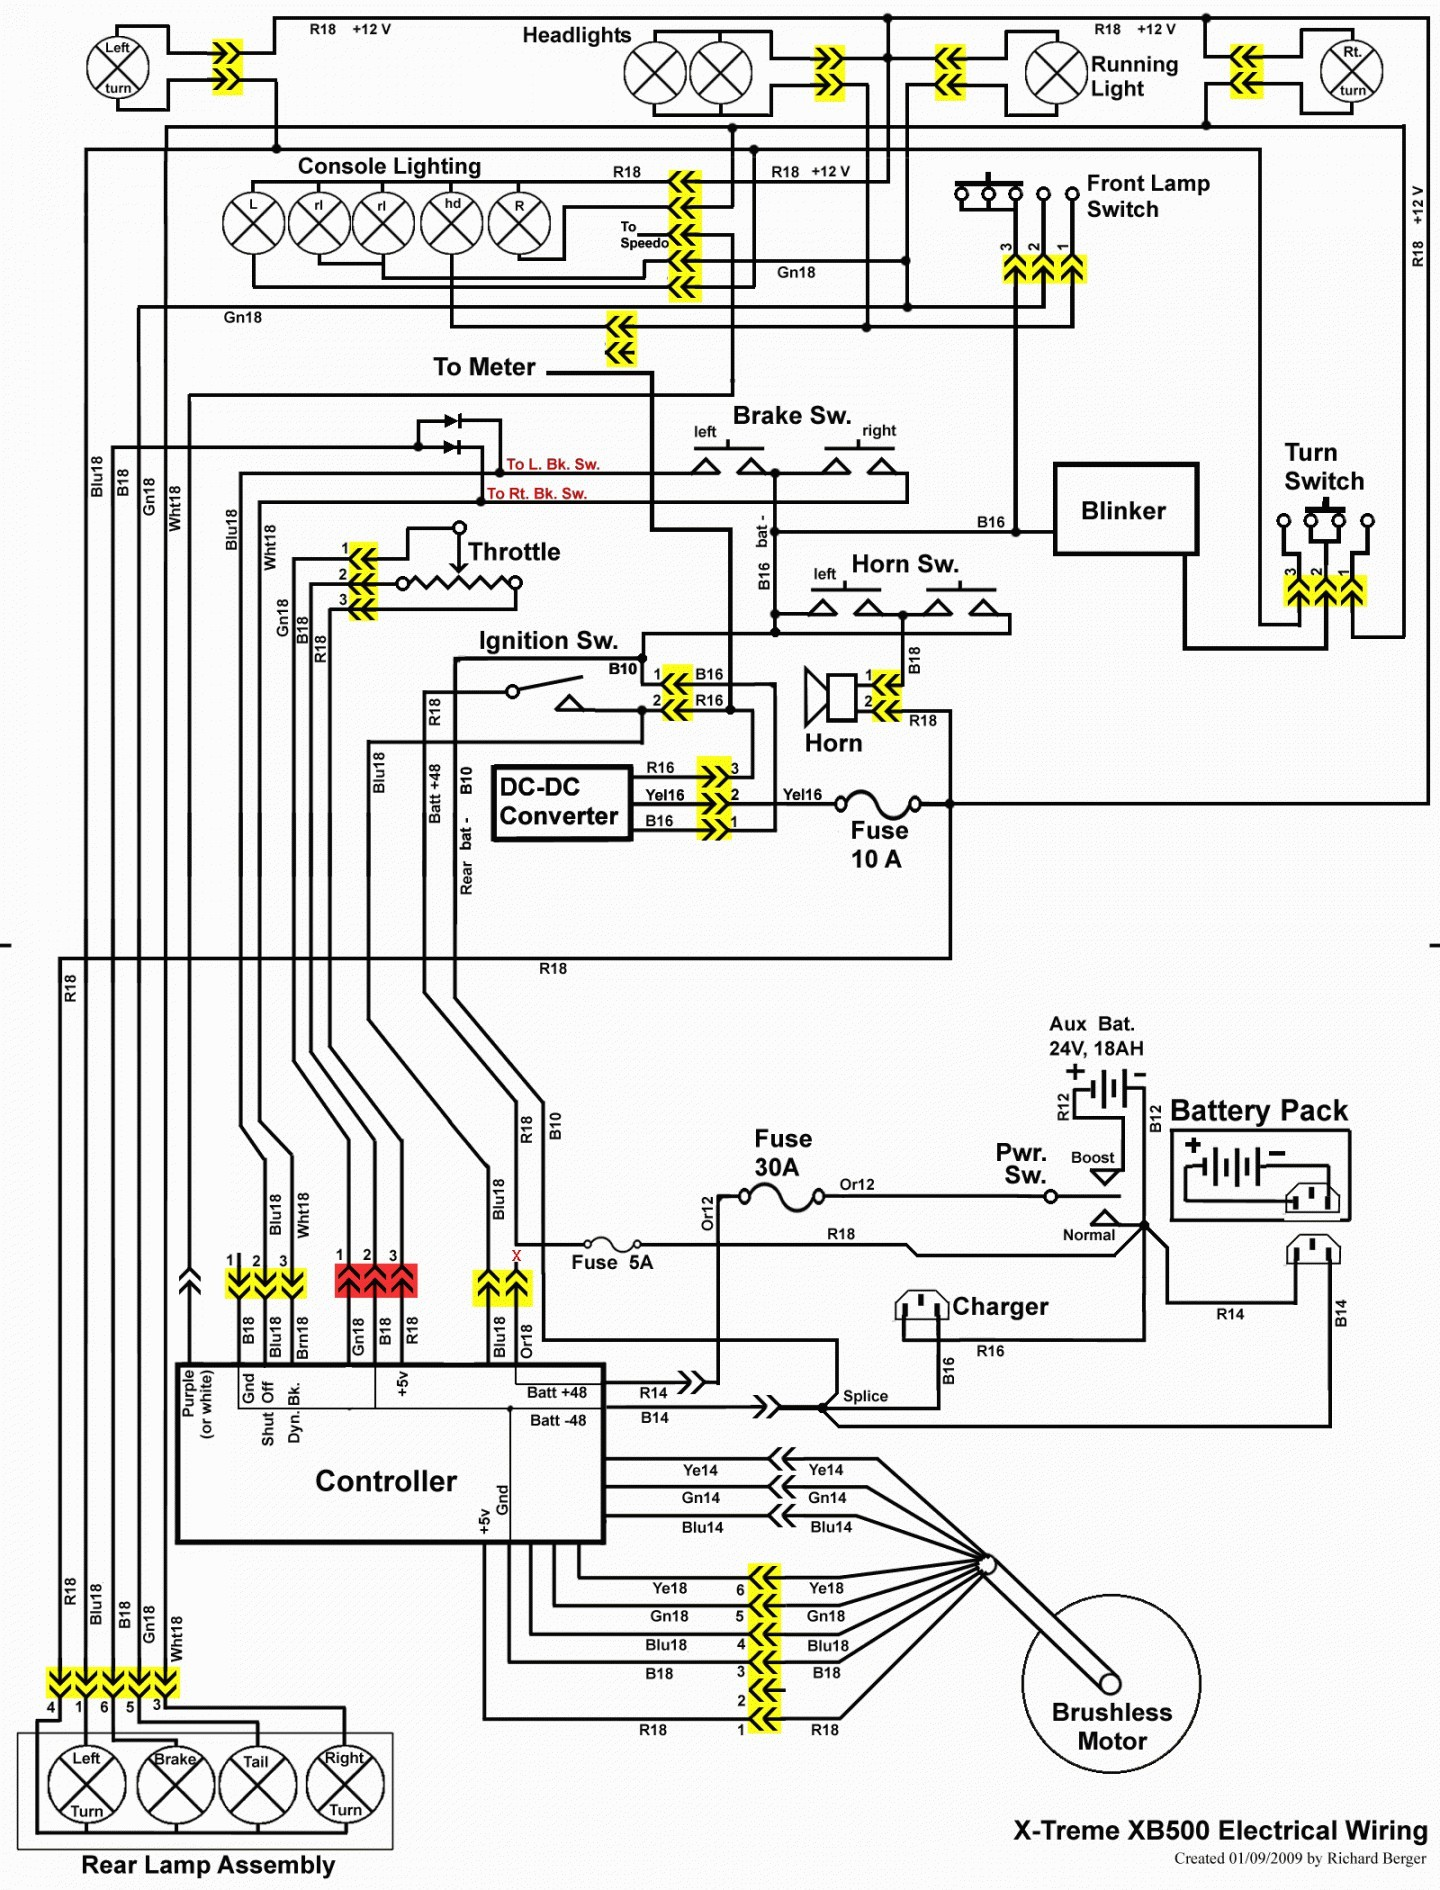 wire diagram for tao tao scooter wiring diagram expert tao tao 125cc 4  wheeler wiring diagram